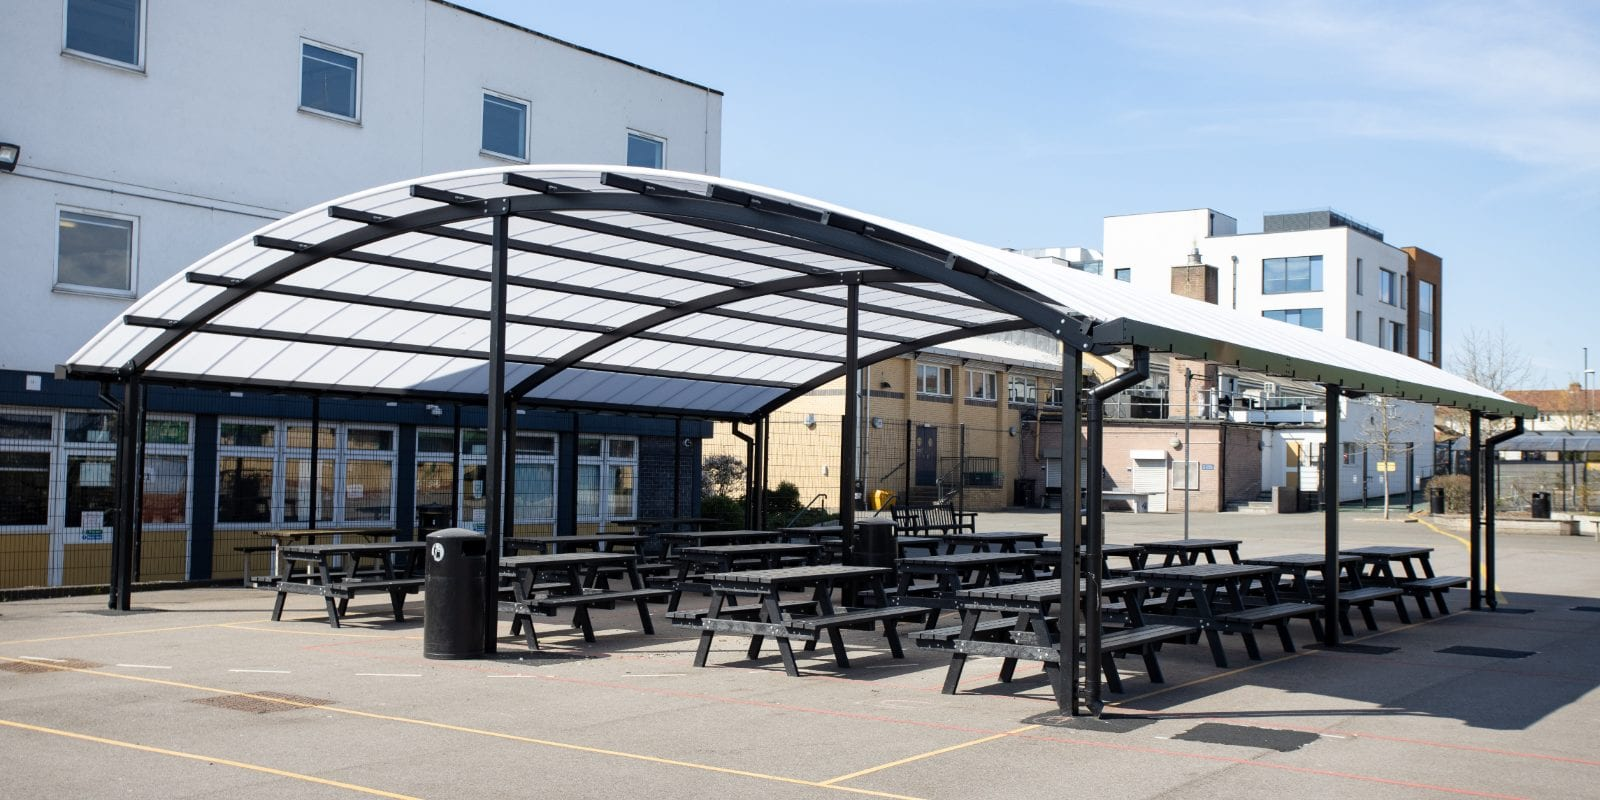 Black frame canopy we made for The Cardinal Wiseman School